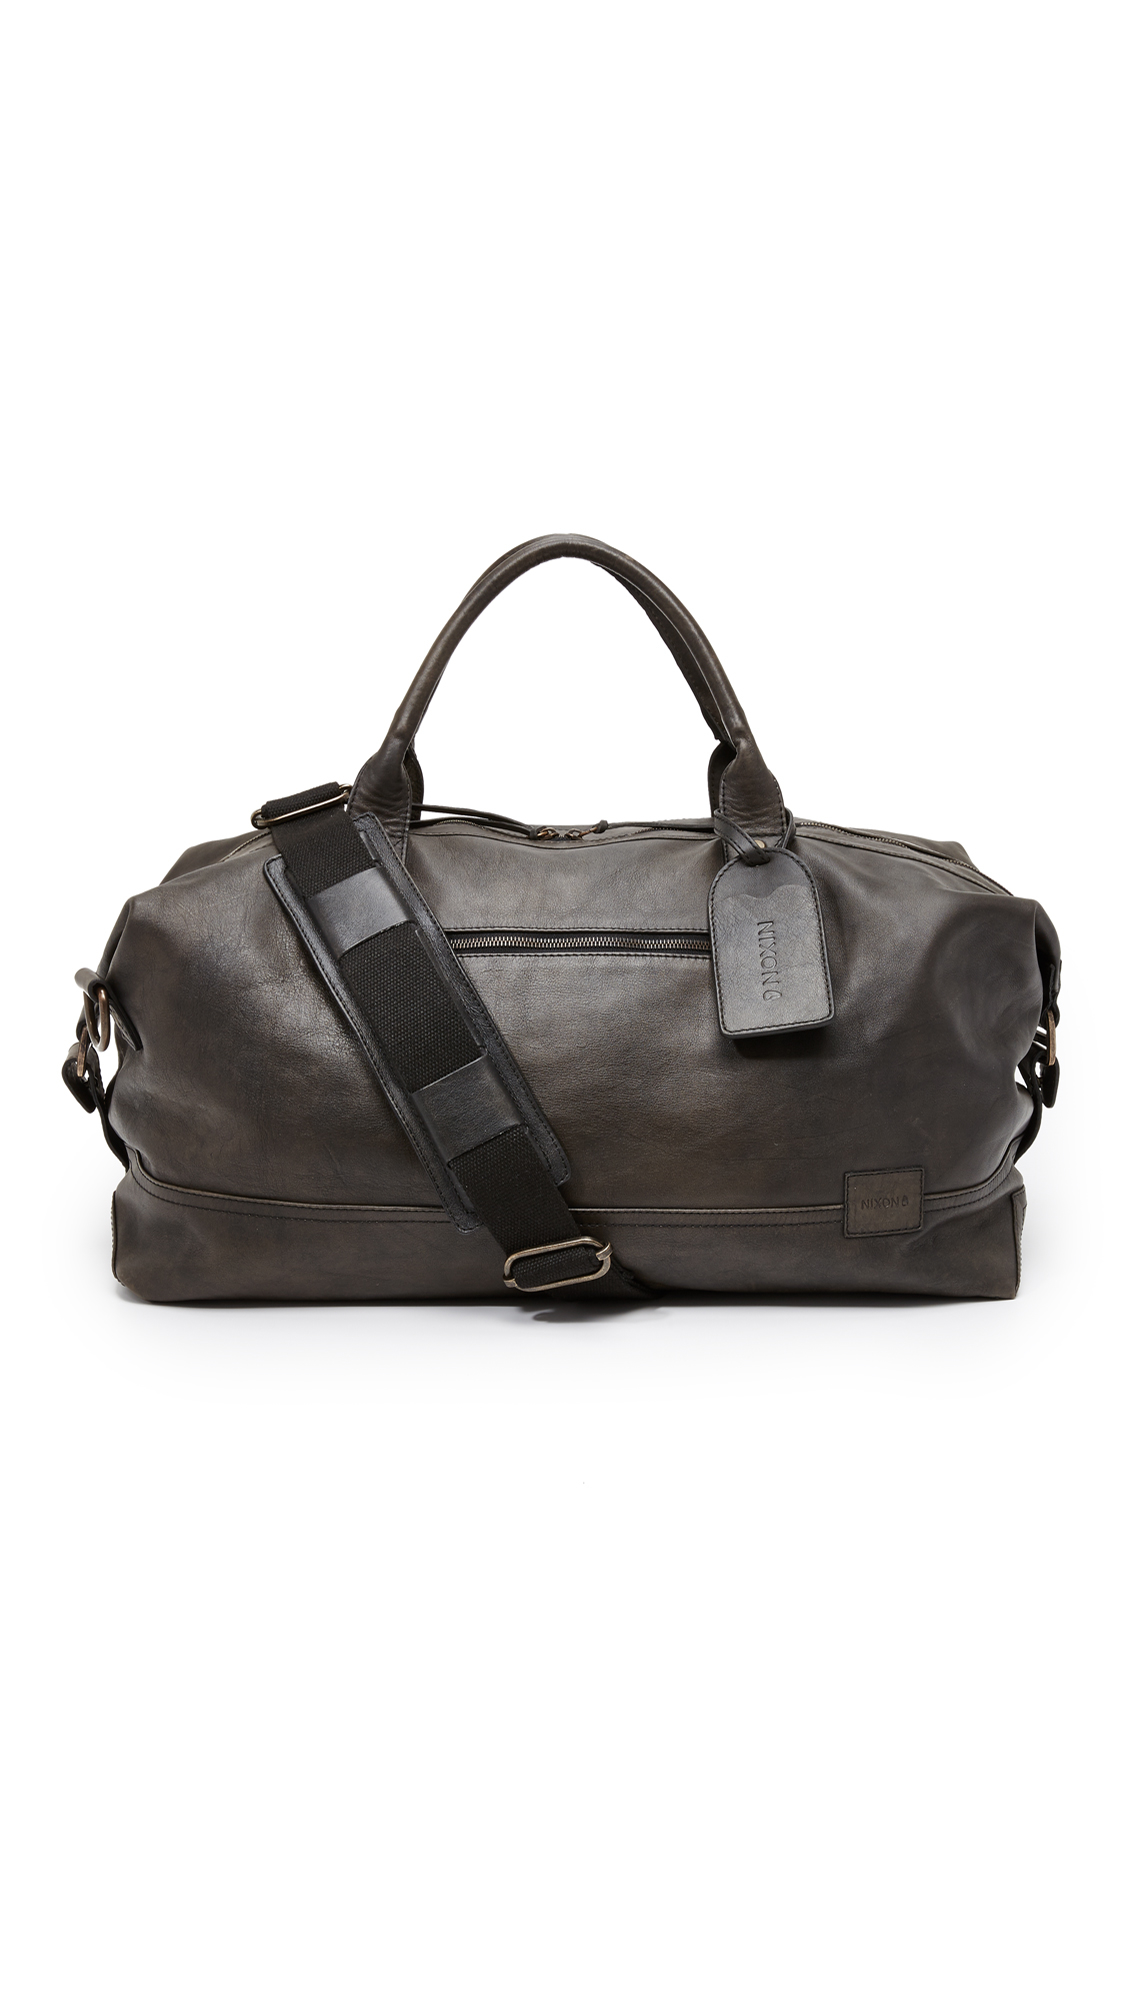 b524483004f Nixon Desperado Leather Duffel Bag in Black for Men - Lyst